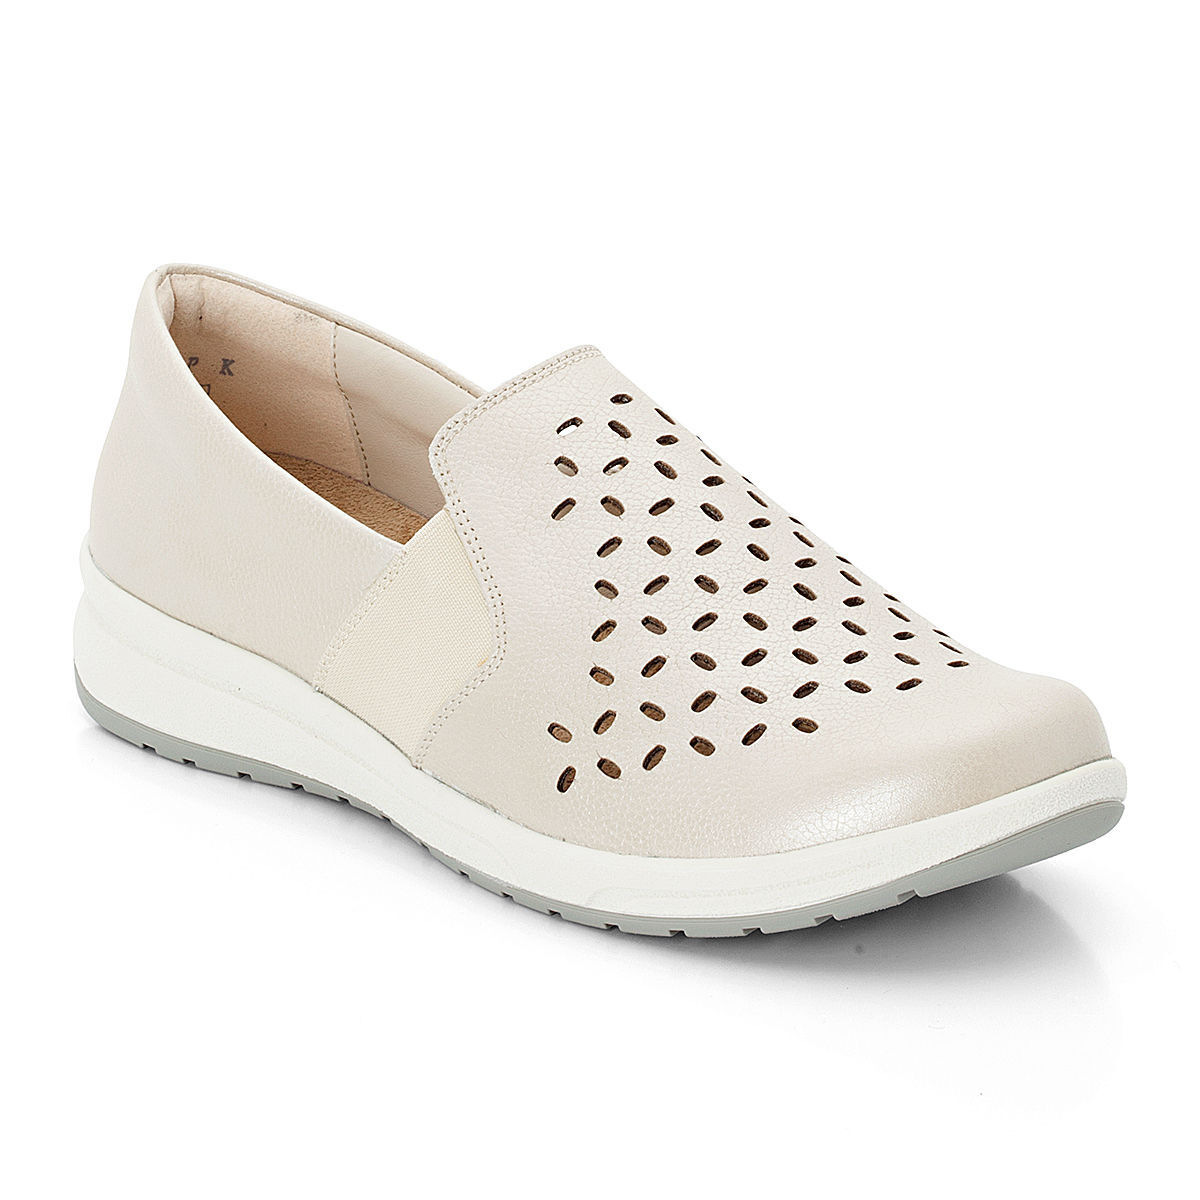 Shop SlipperKarstadt Damen Hush Online Puppies 5jcq3L4AR